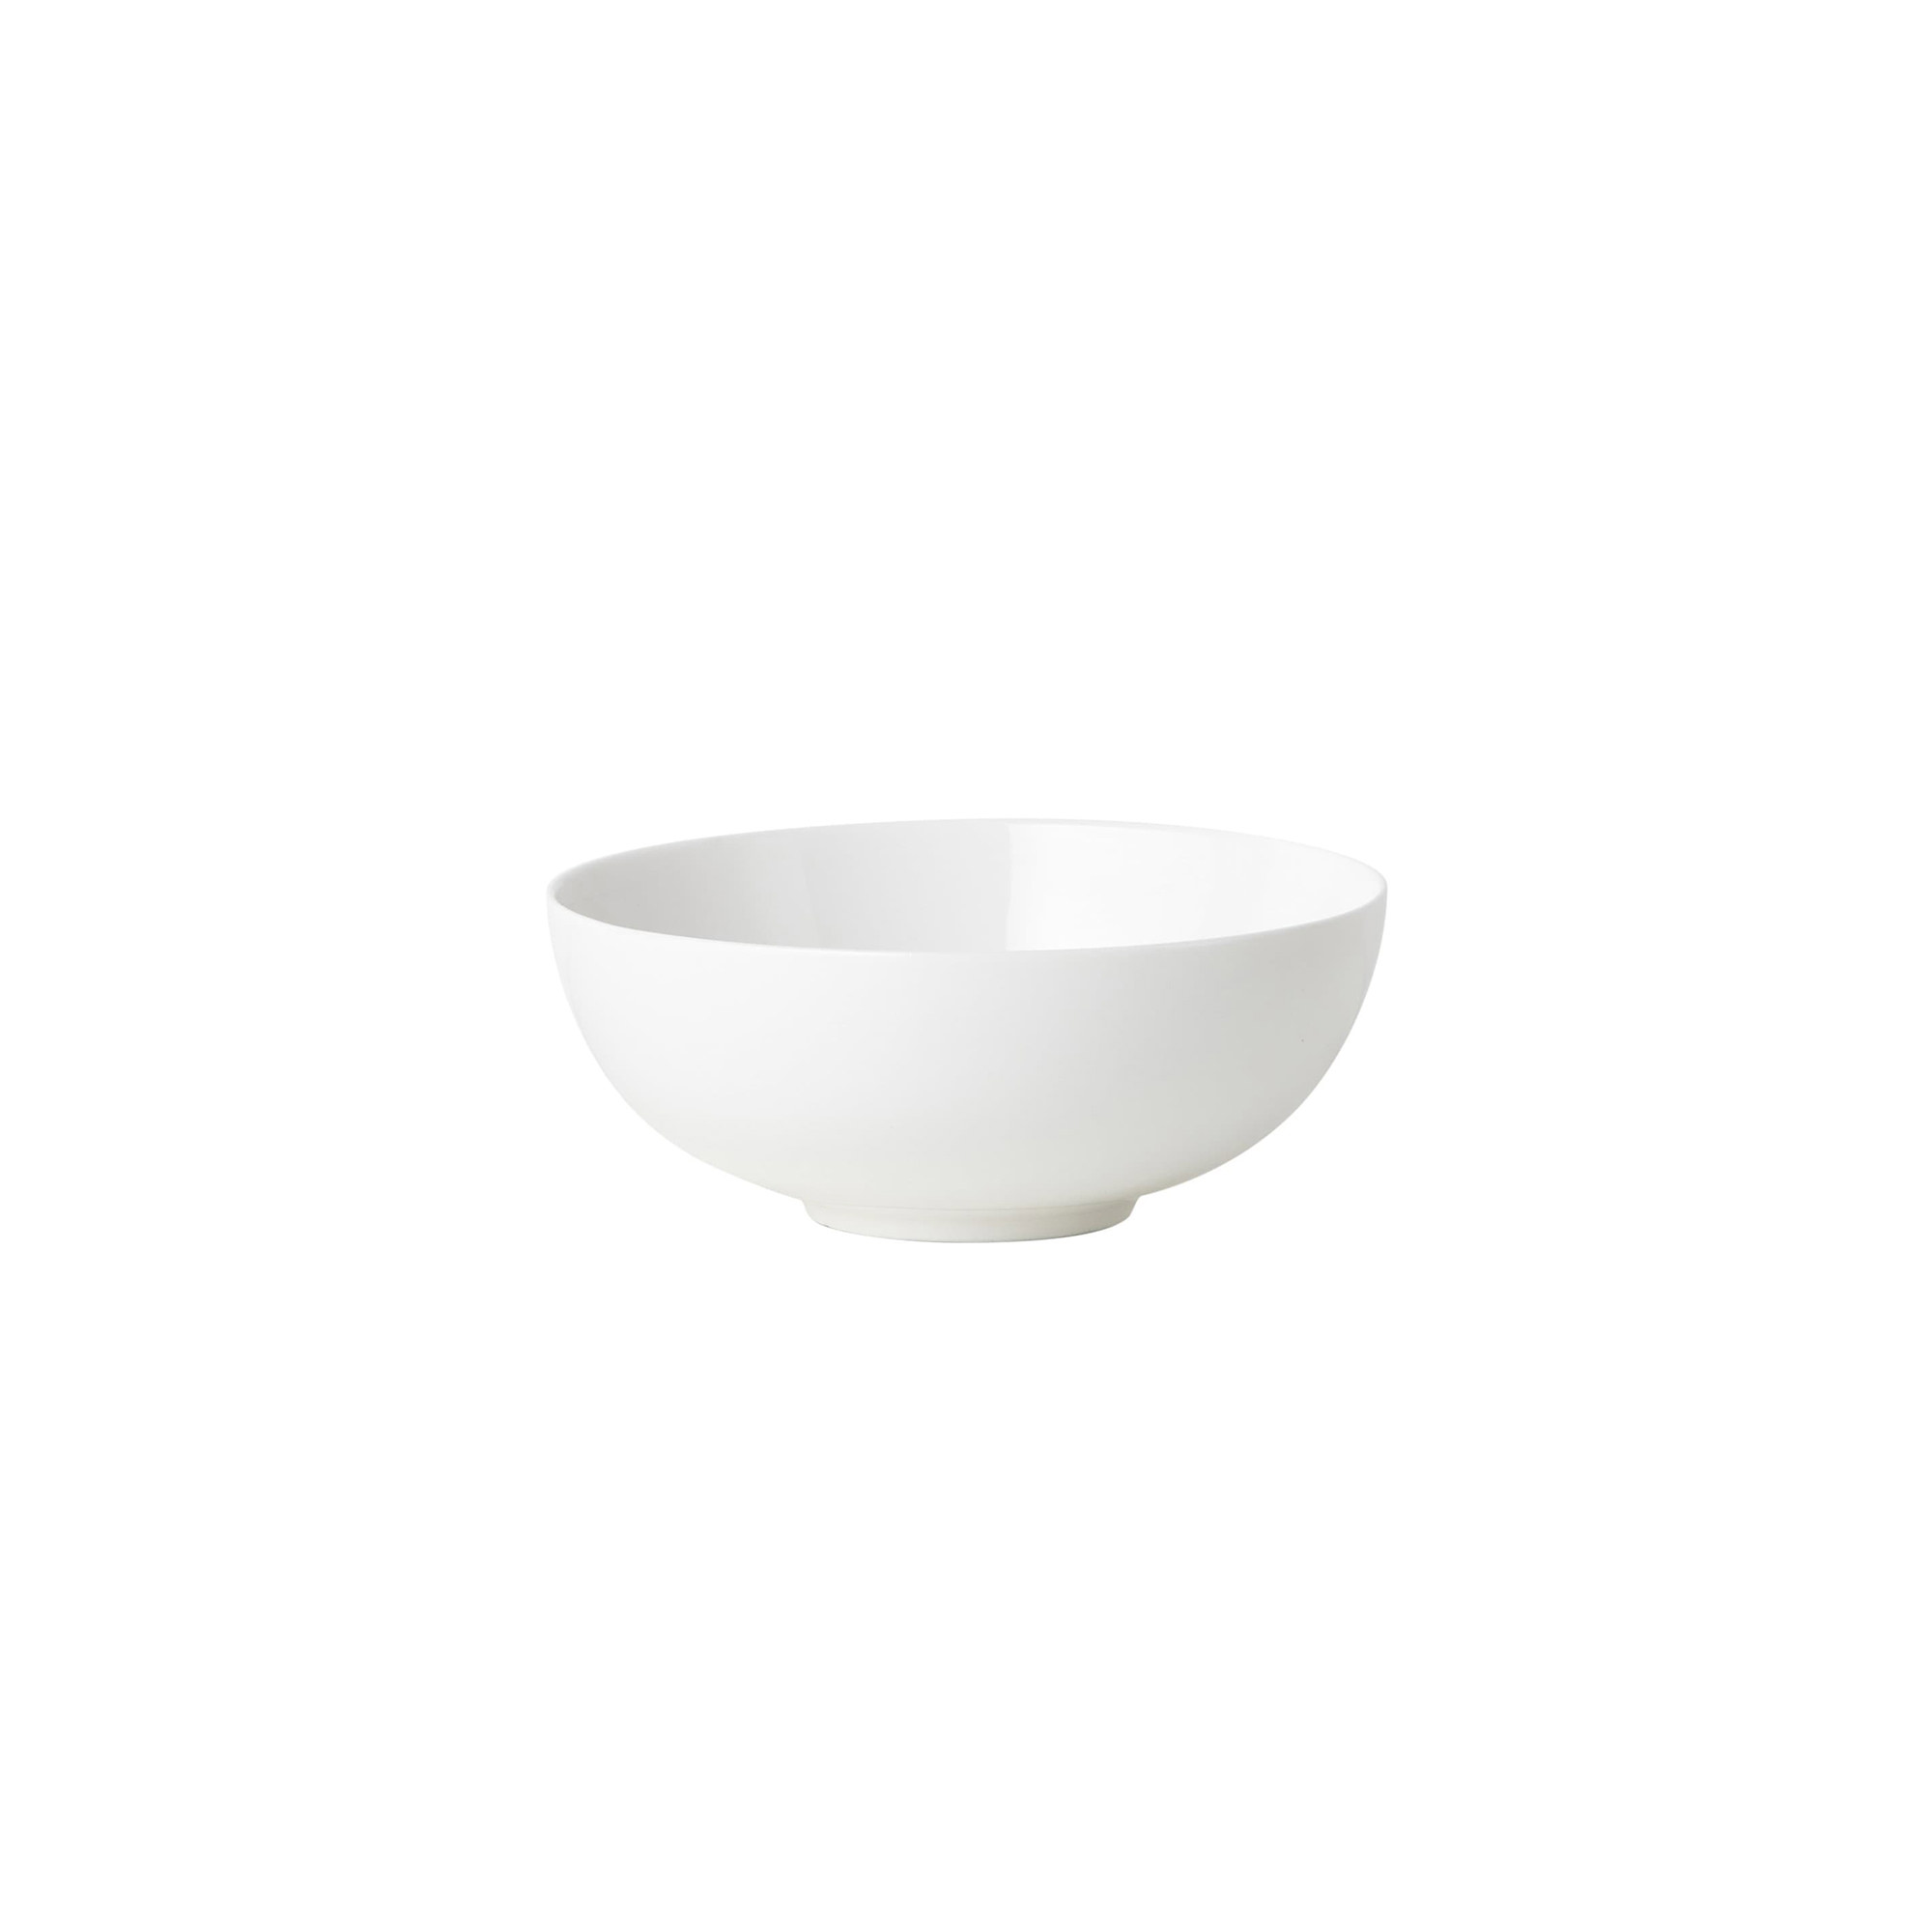 Salisbury & Co Classic Coupe Cereal Bowl 15cm White